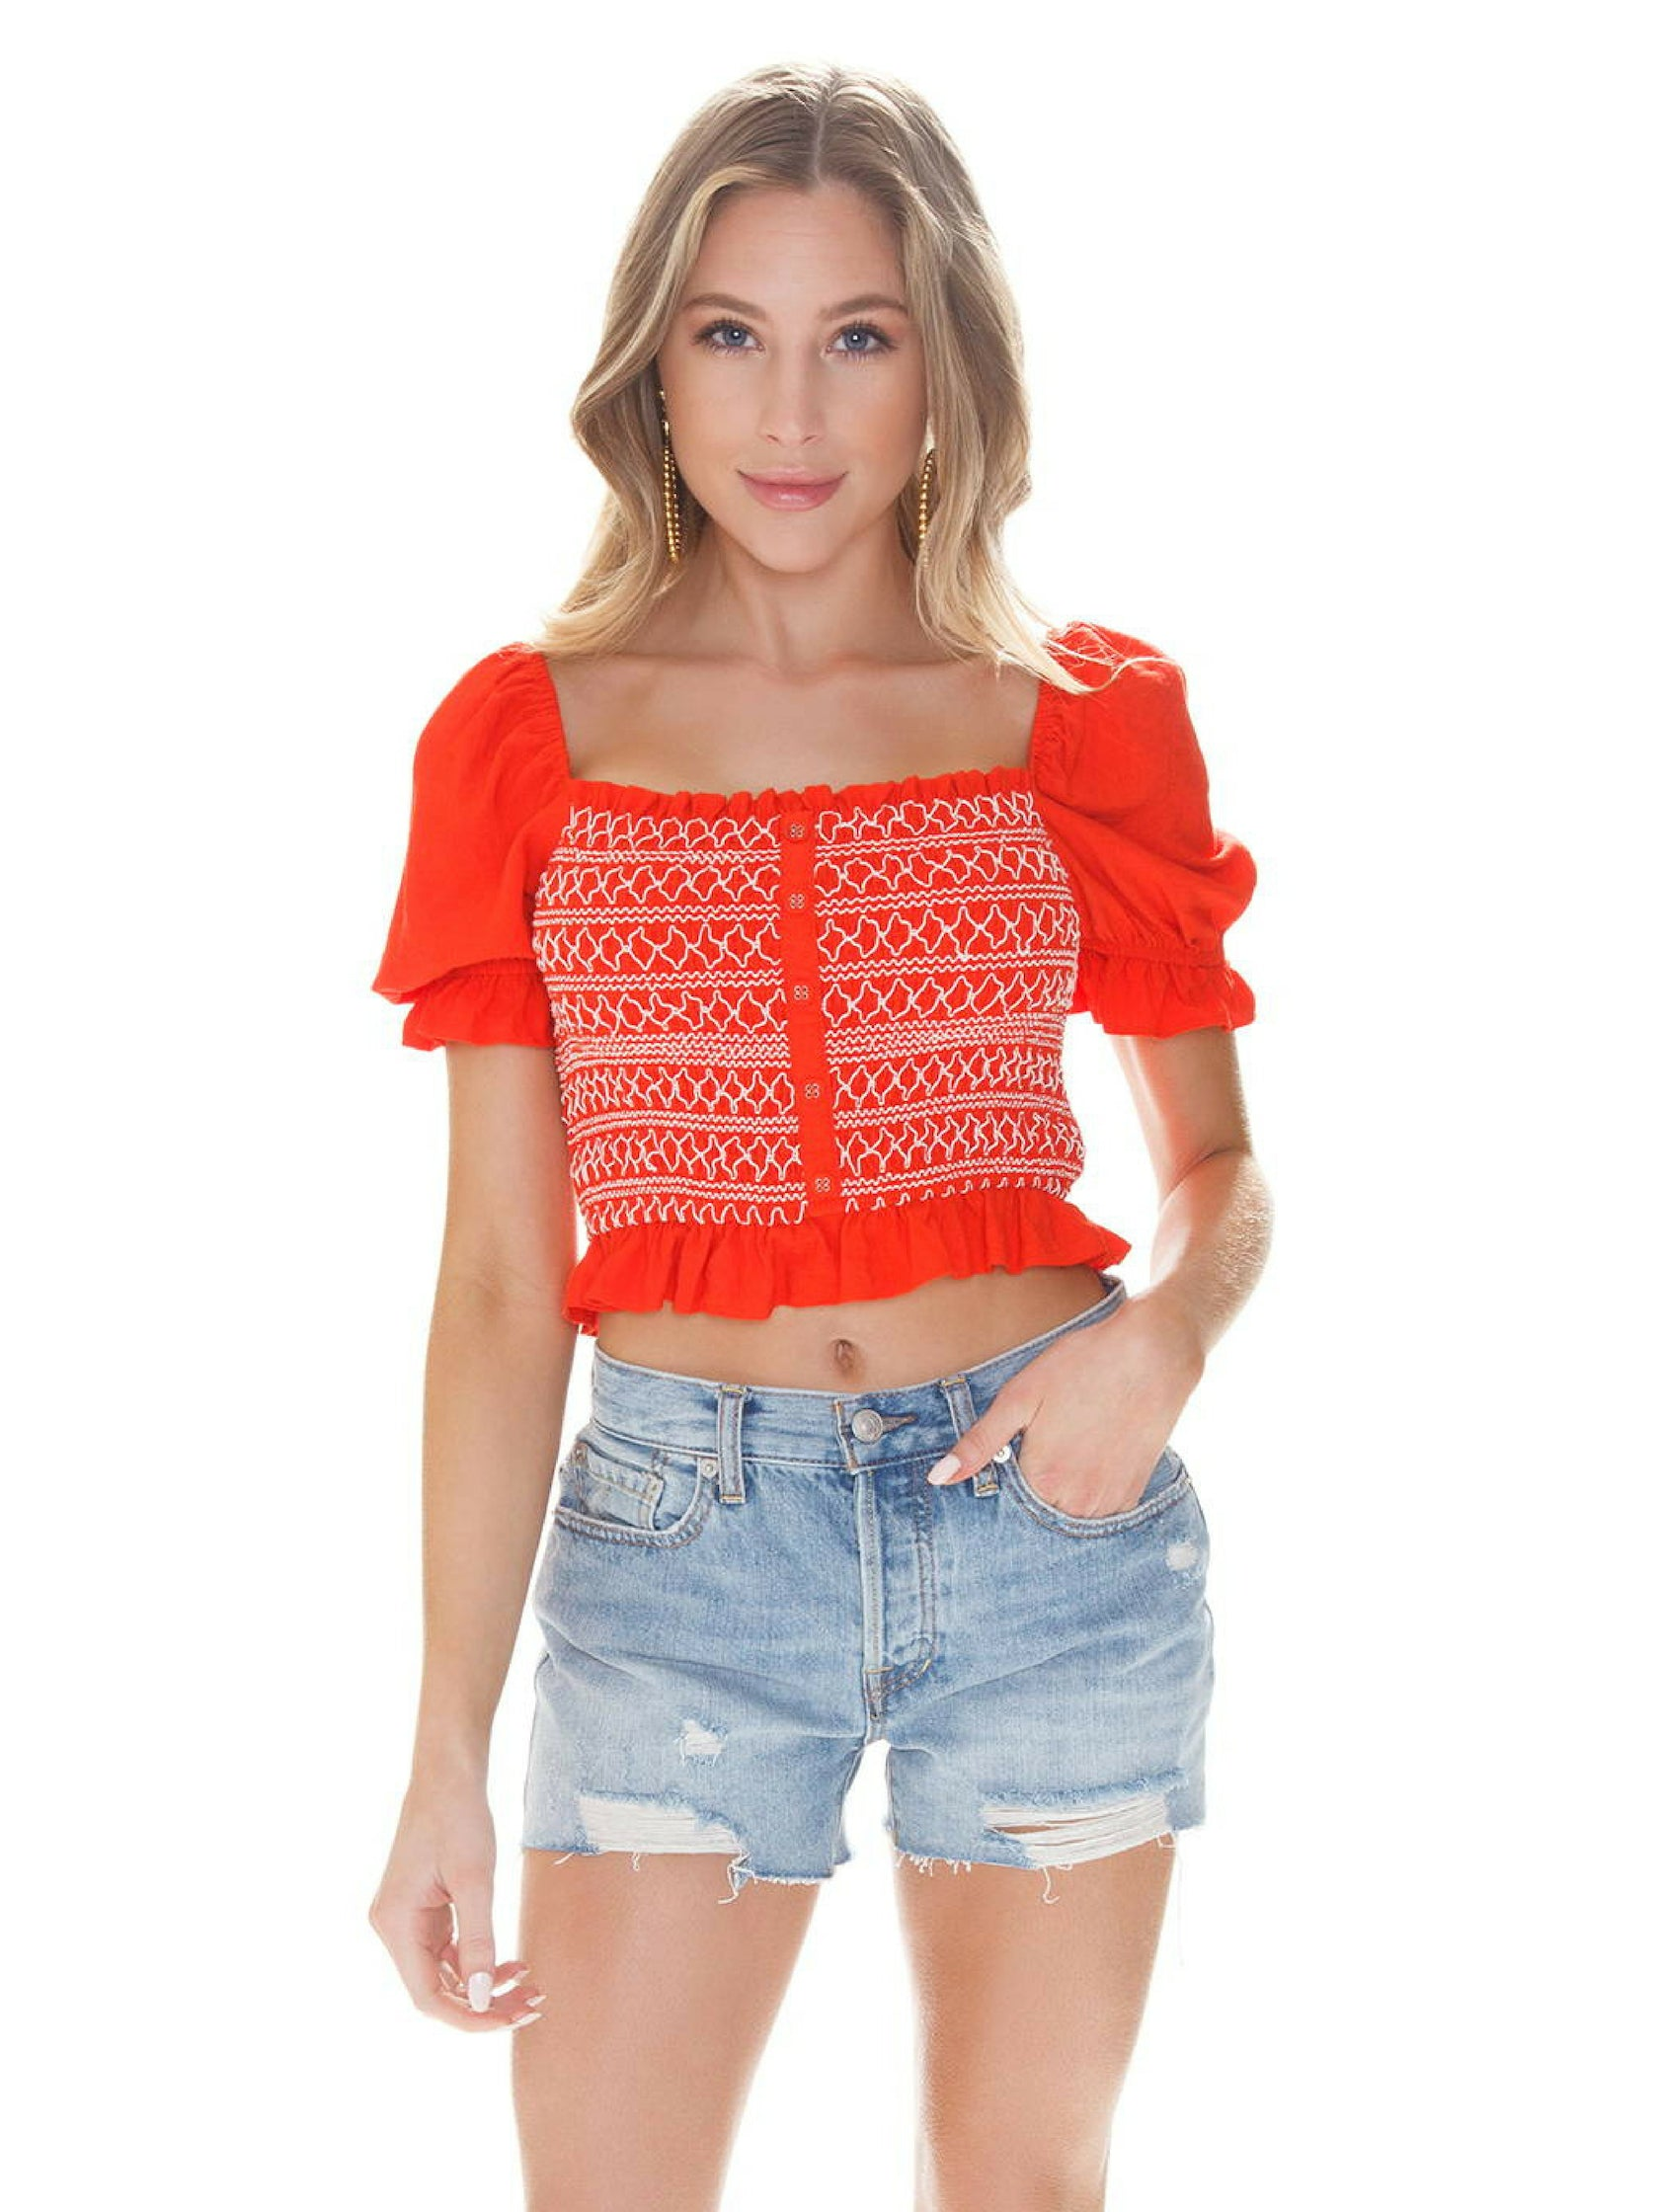 Woman wearing a top rental from LOST + WANDER called Bloody Mary Smocked Top